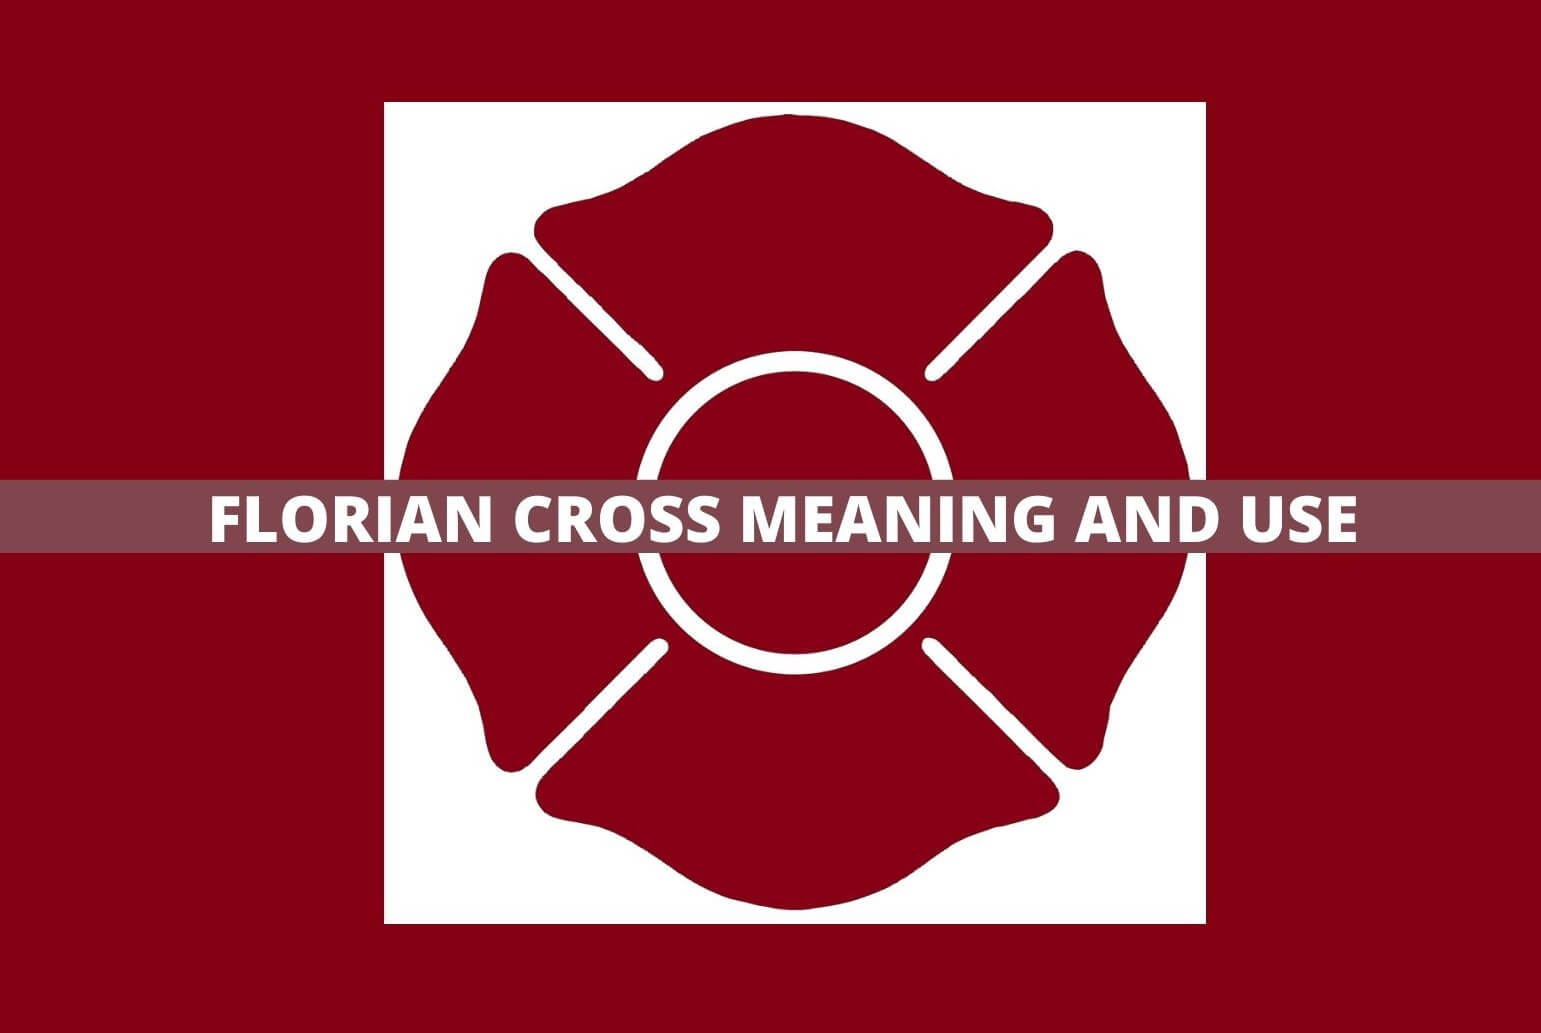 Florian Cross Meaning